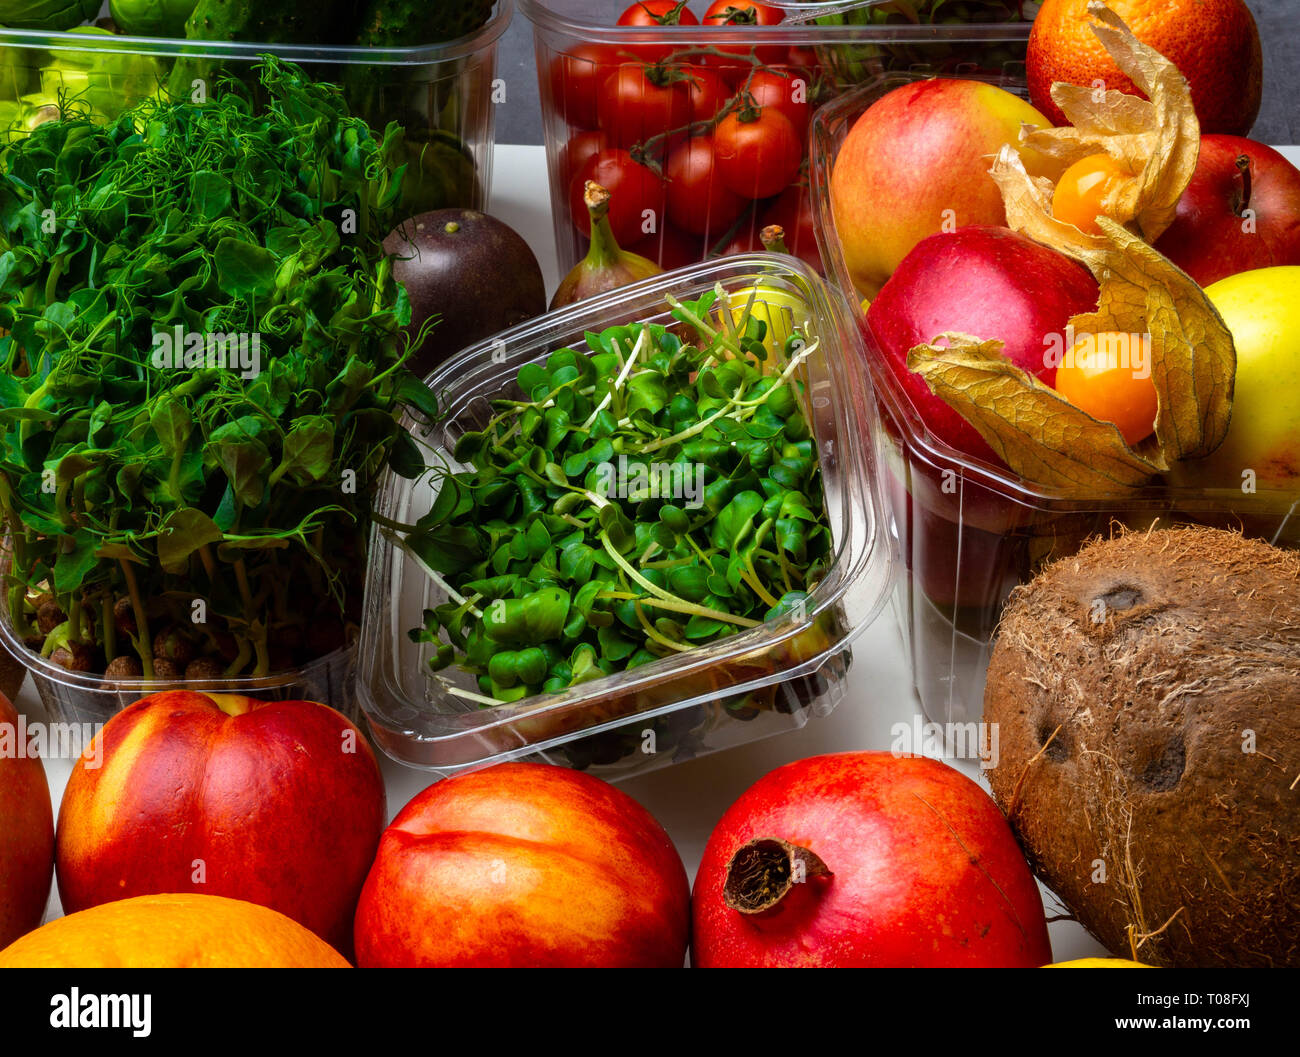 Colorful fruits and vegetables background, rich in vitamins and antioxidants - Stock Image